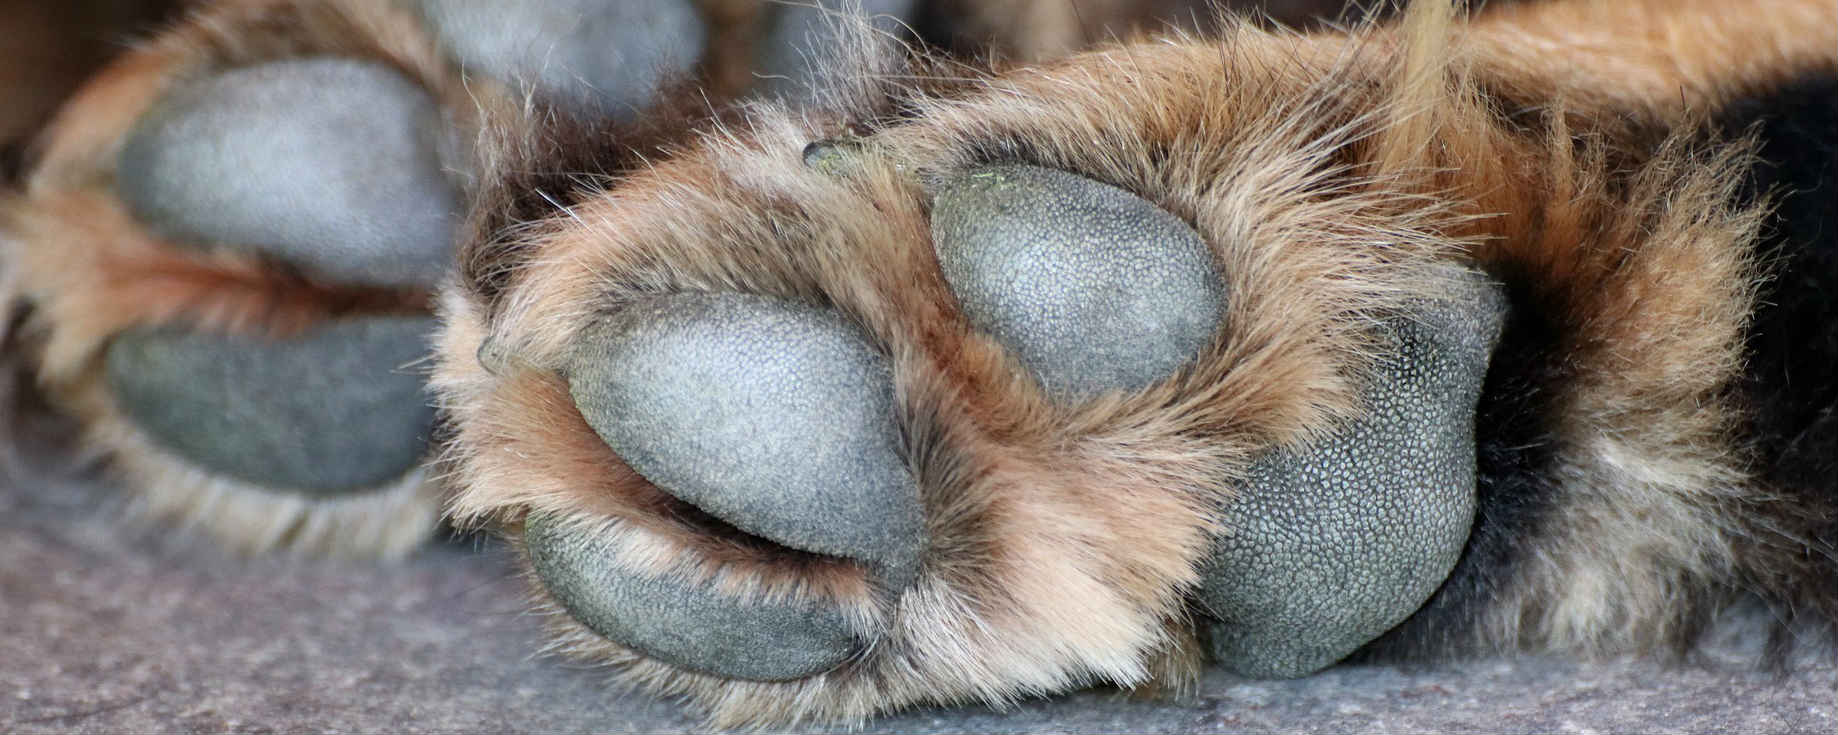 What causes calluses on my dog's hind paws between the toes and heel?